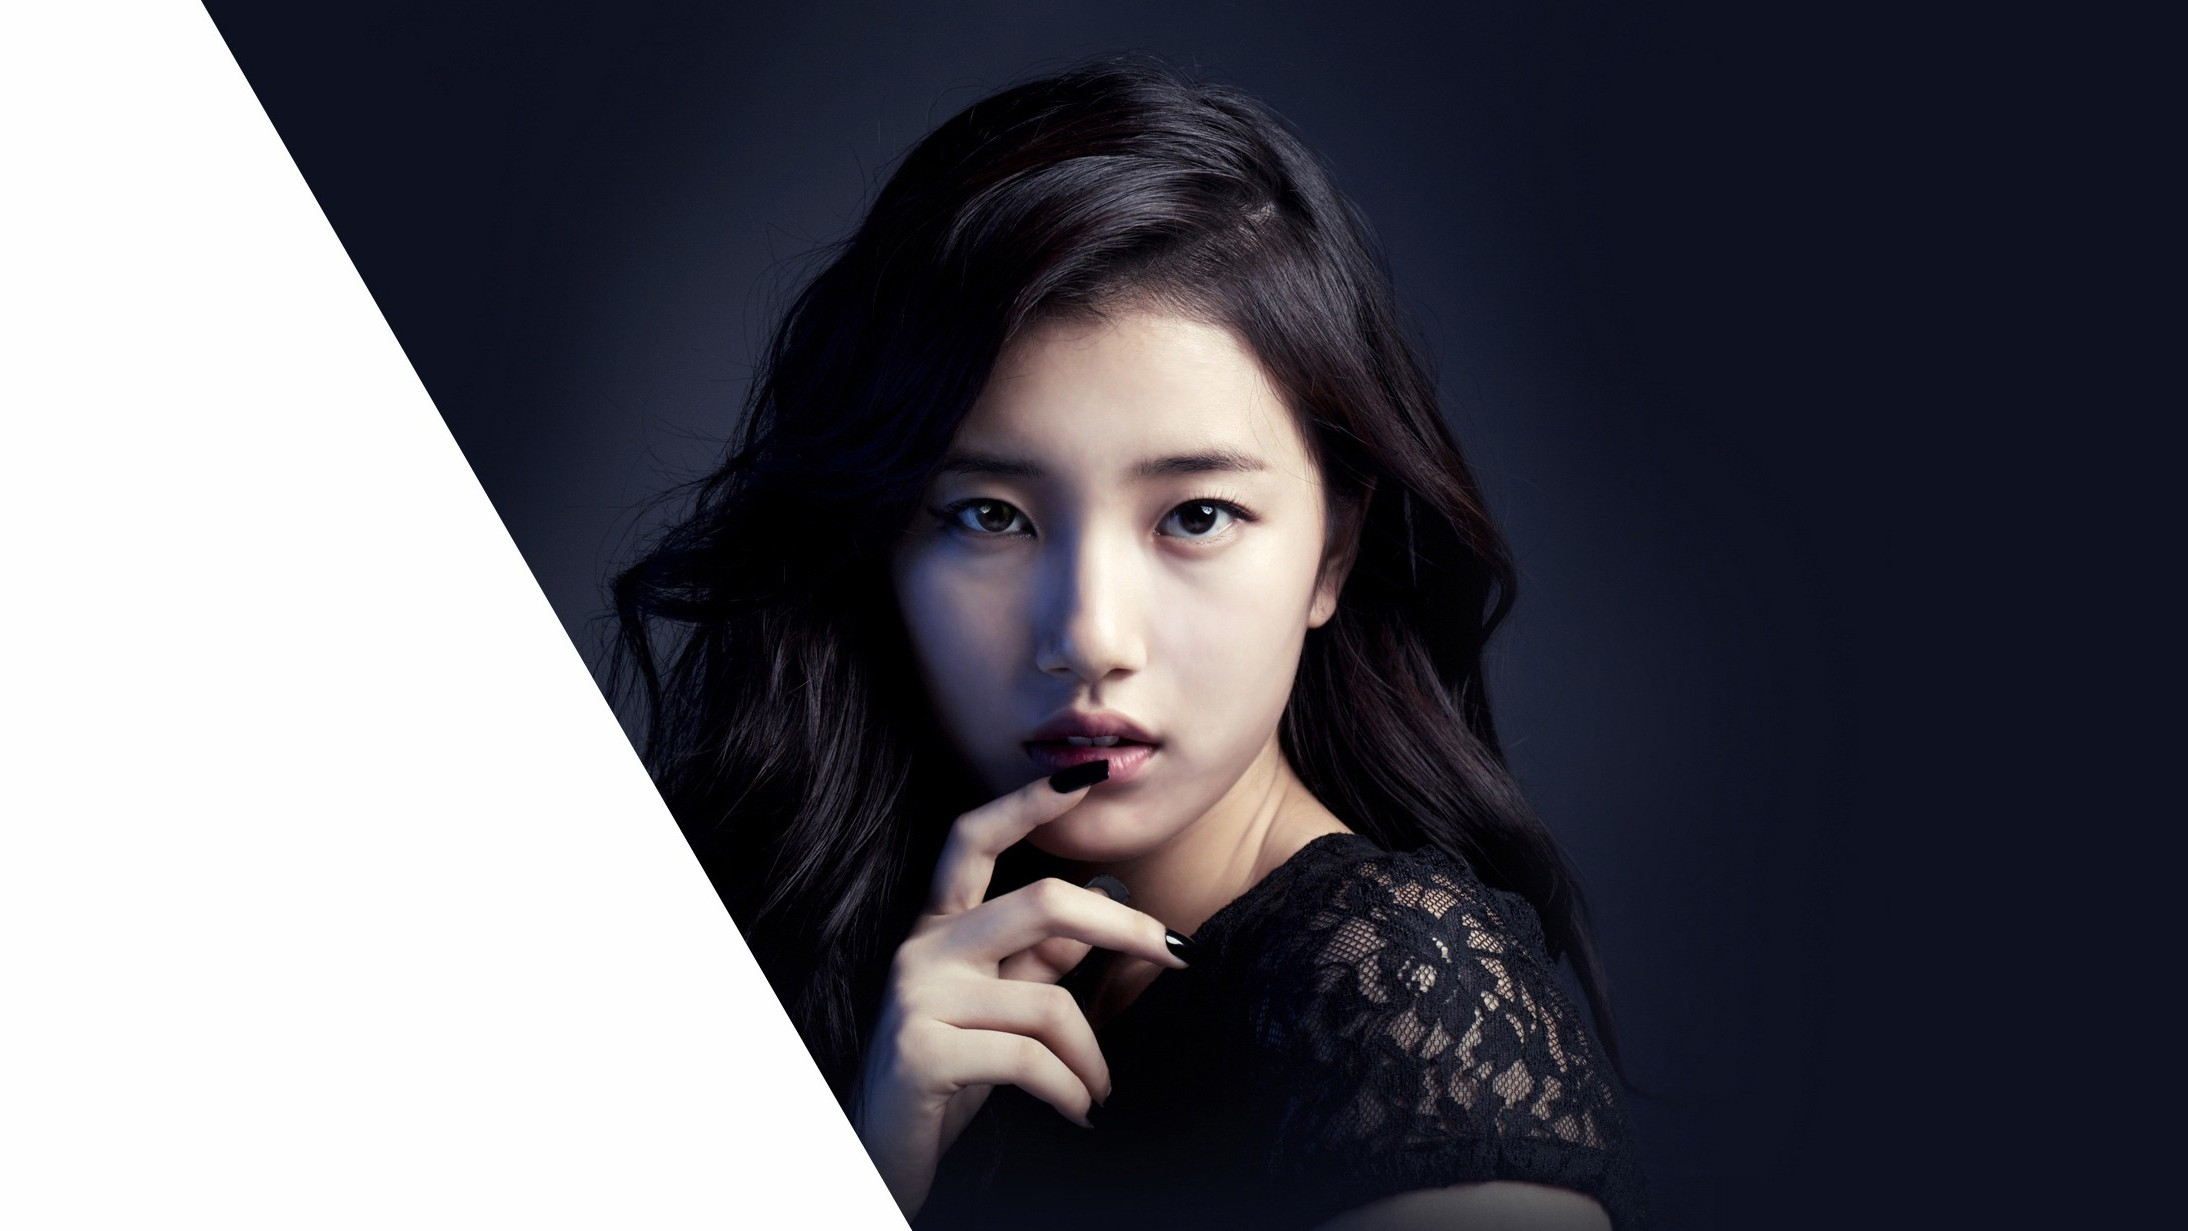 Suzy Wallpapers 50 Images